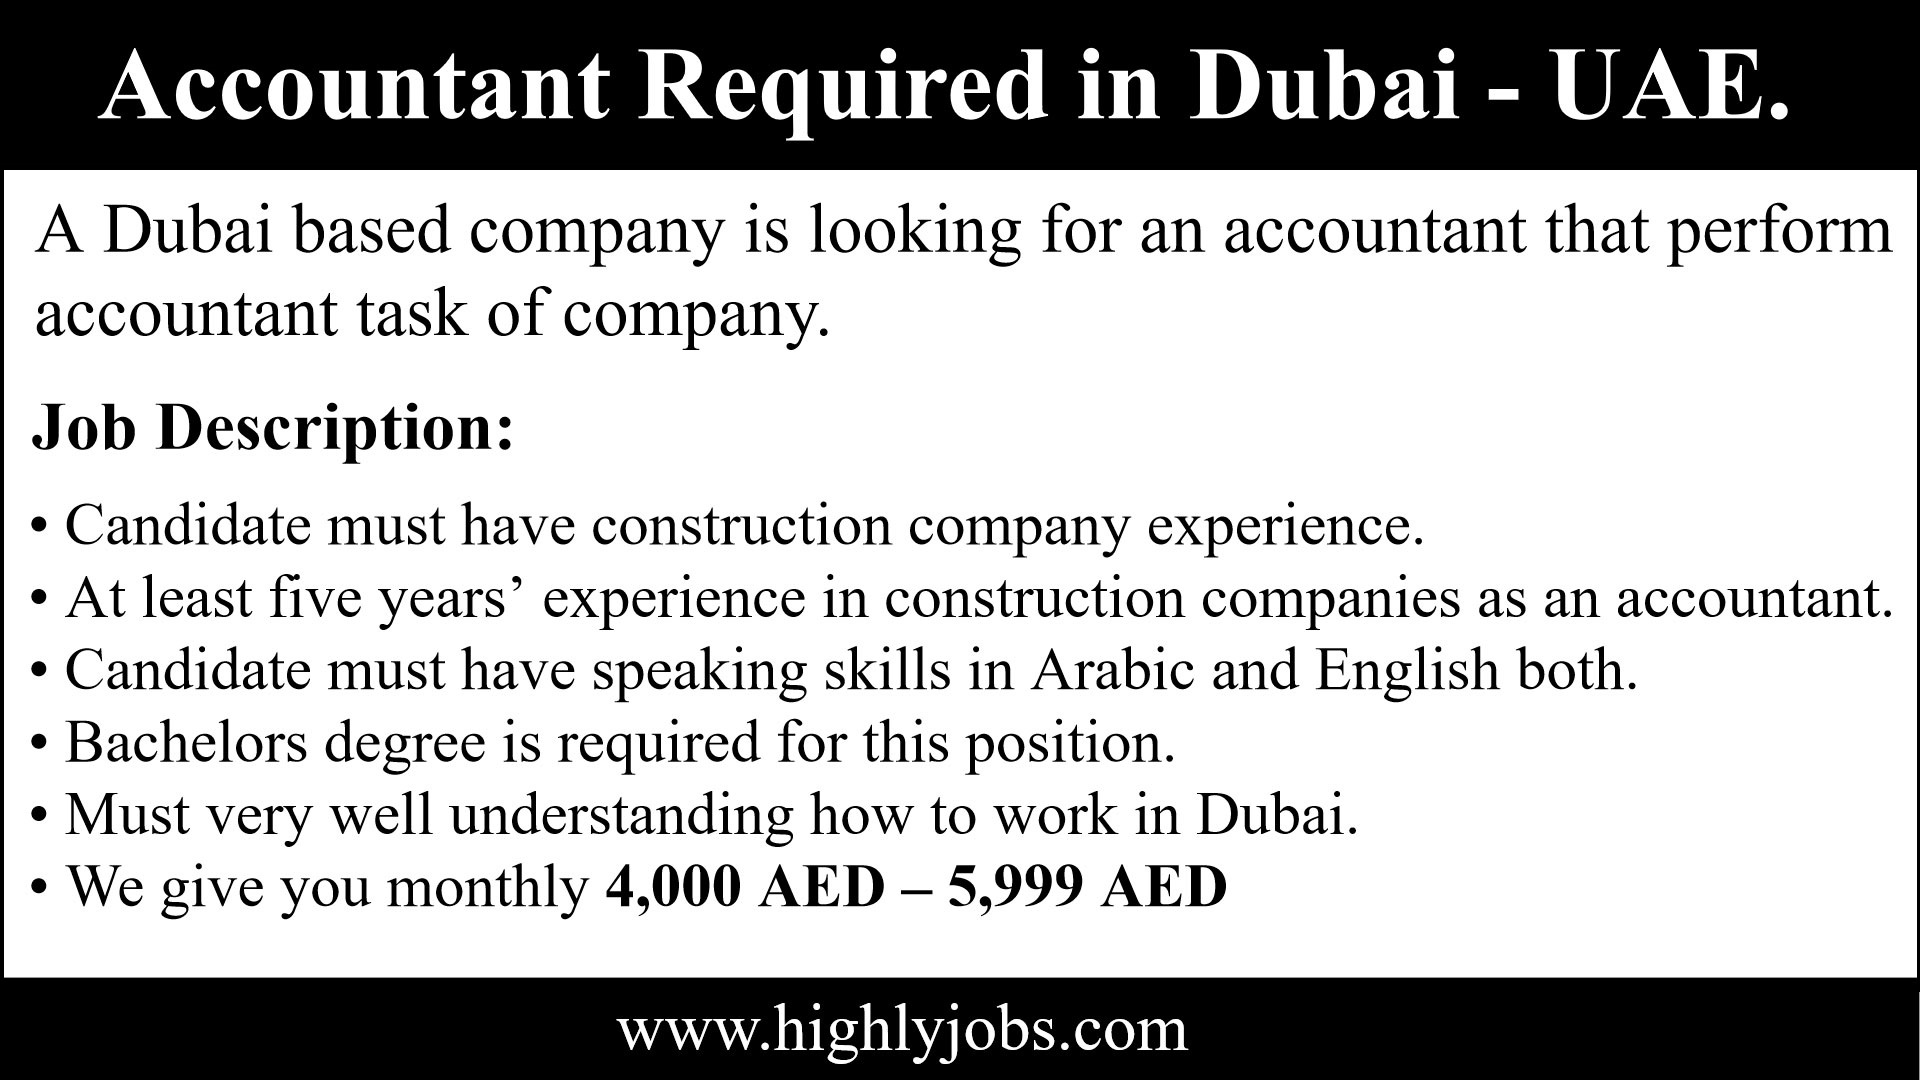 Accountant Job In Dubai, United Arab Emirates | Highlyjobs